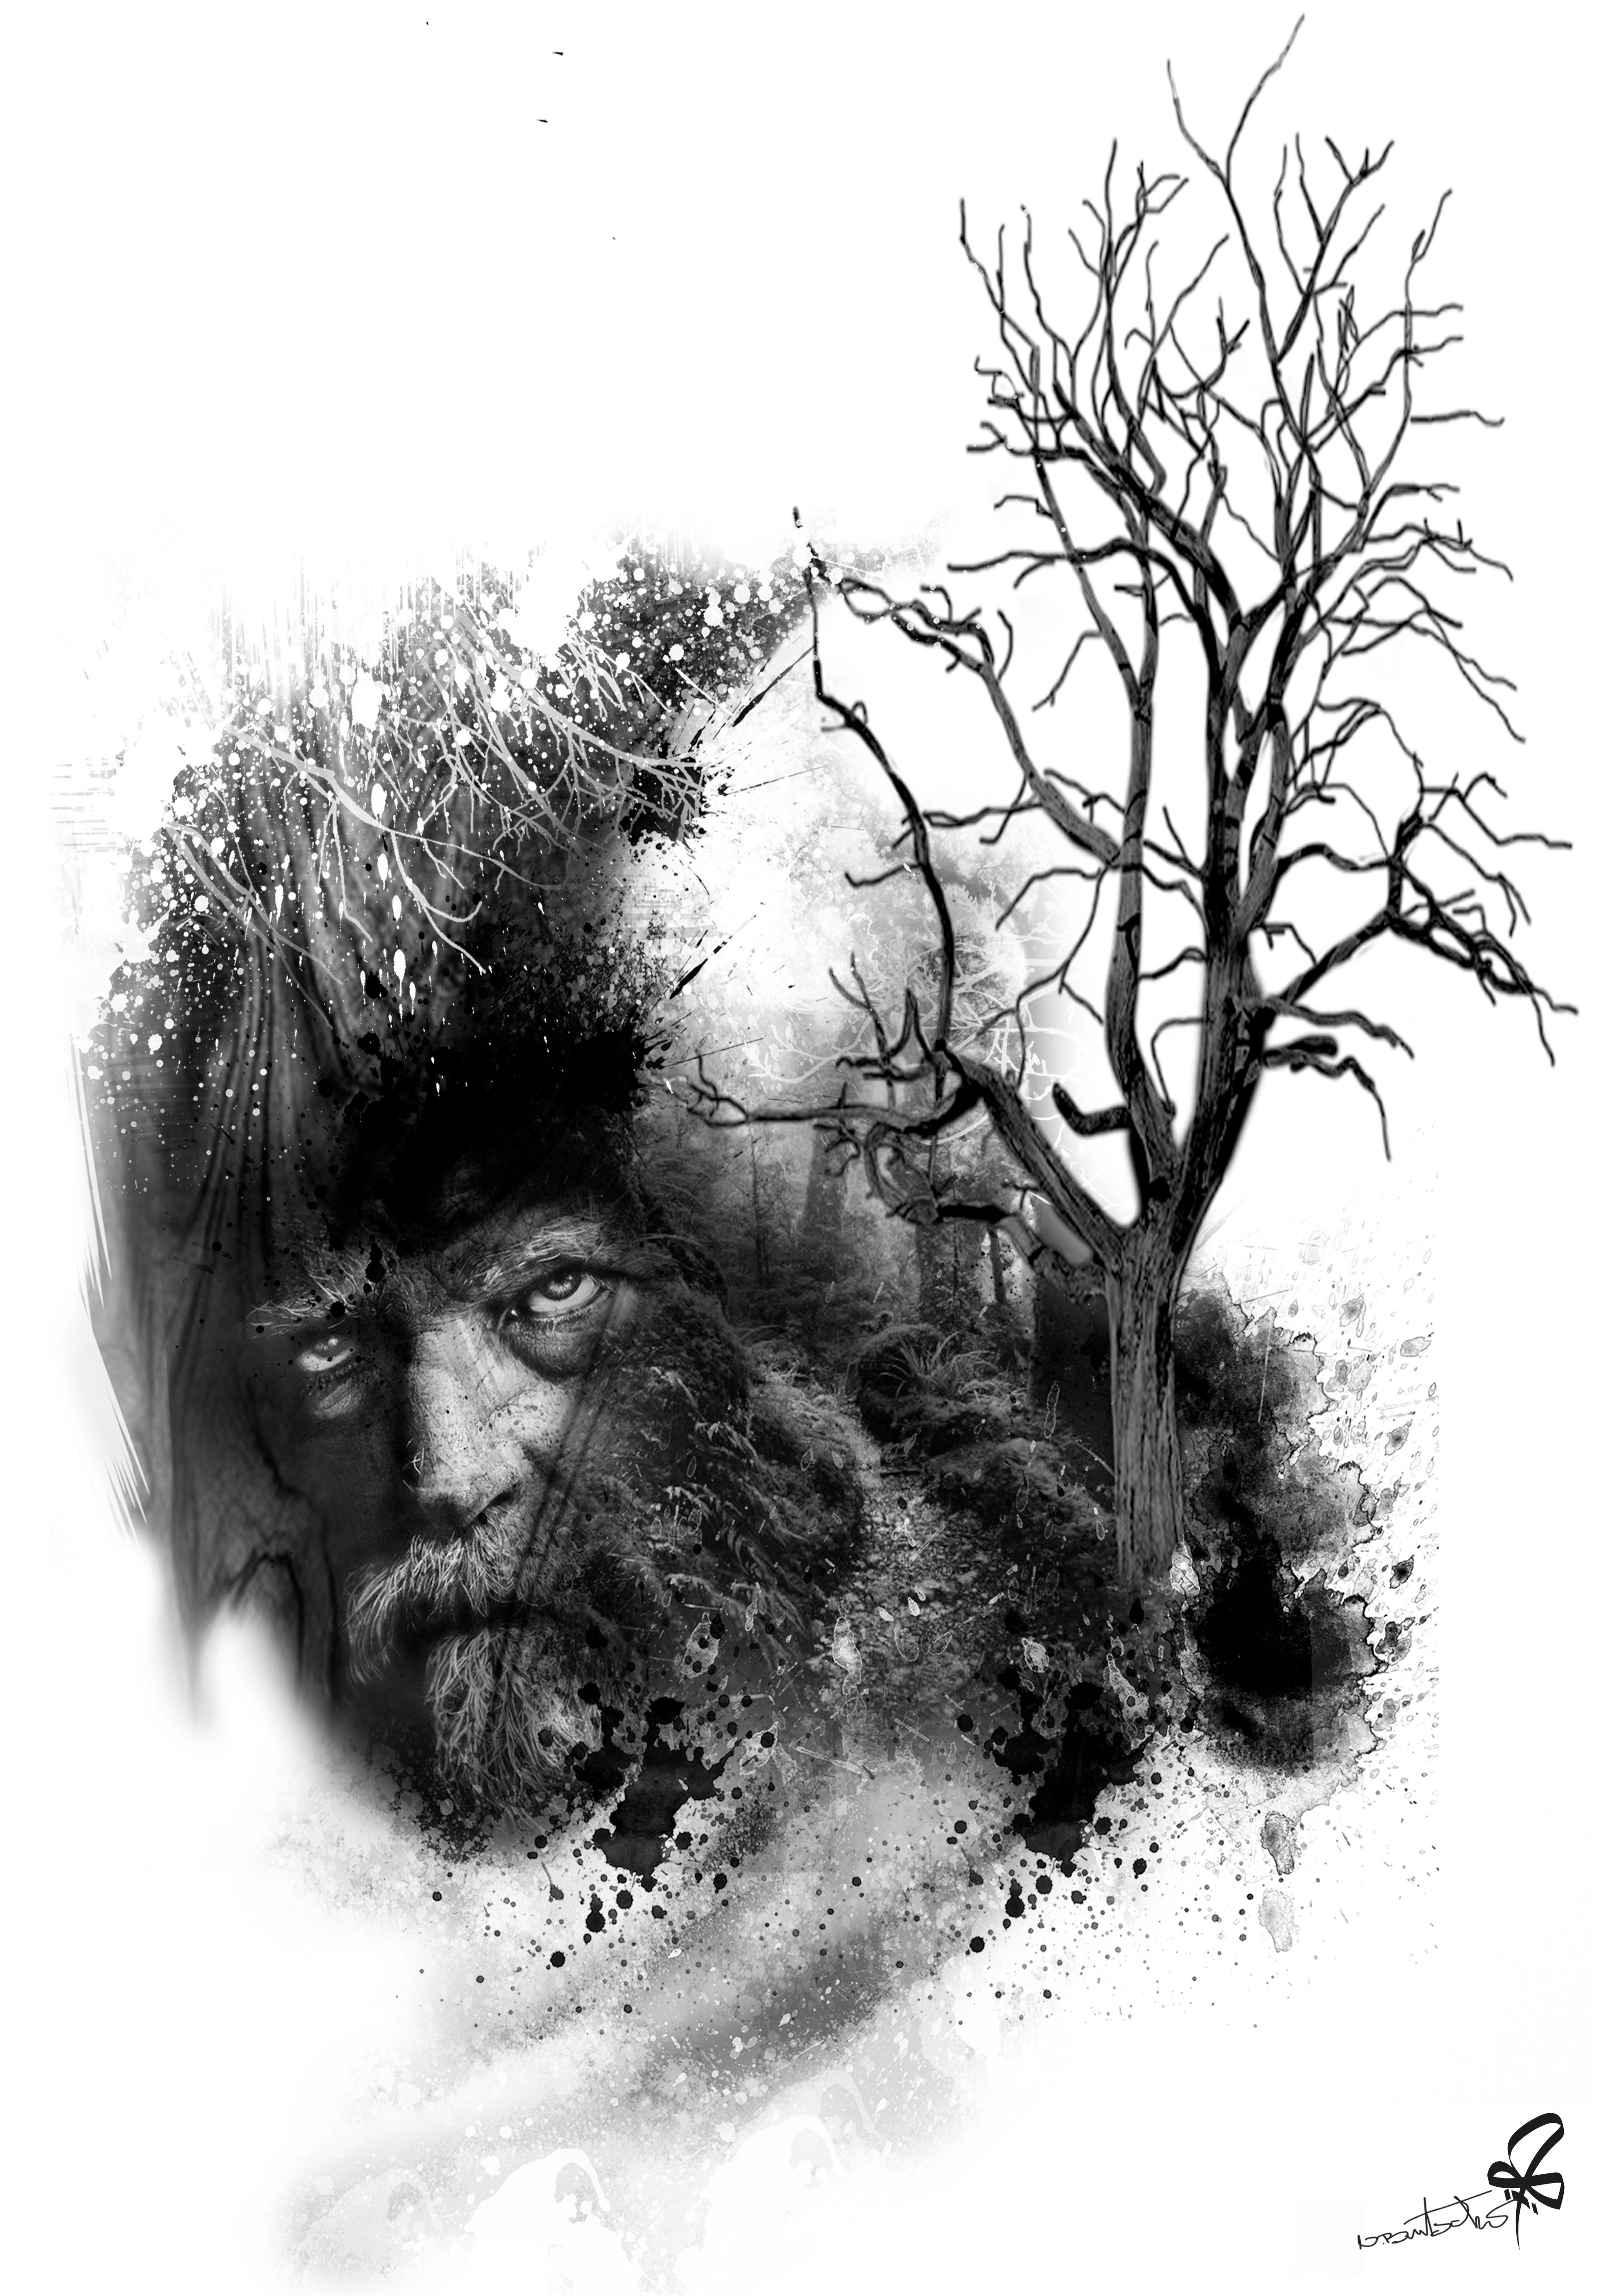 Photoshop, Collage, Tattoo, tree, Burtscher N. | art | Pinterest ...